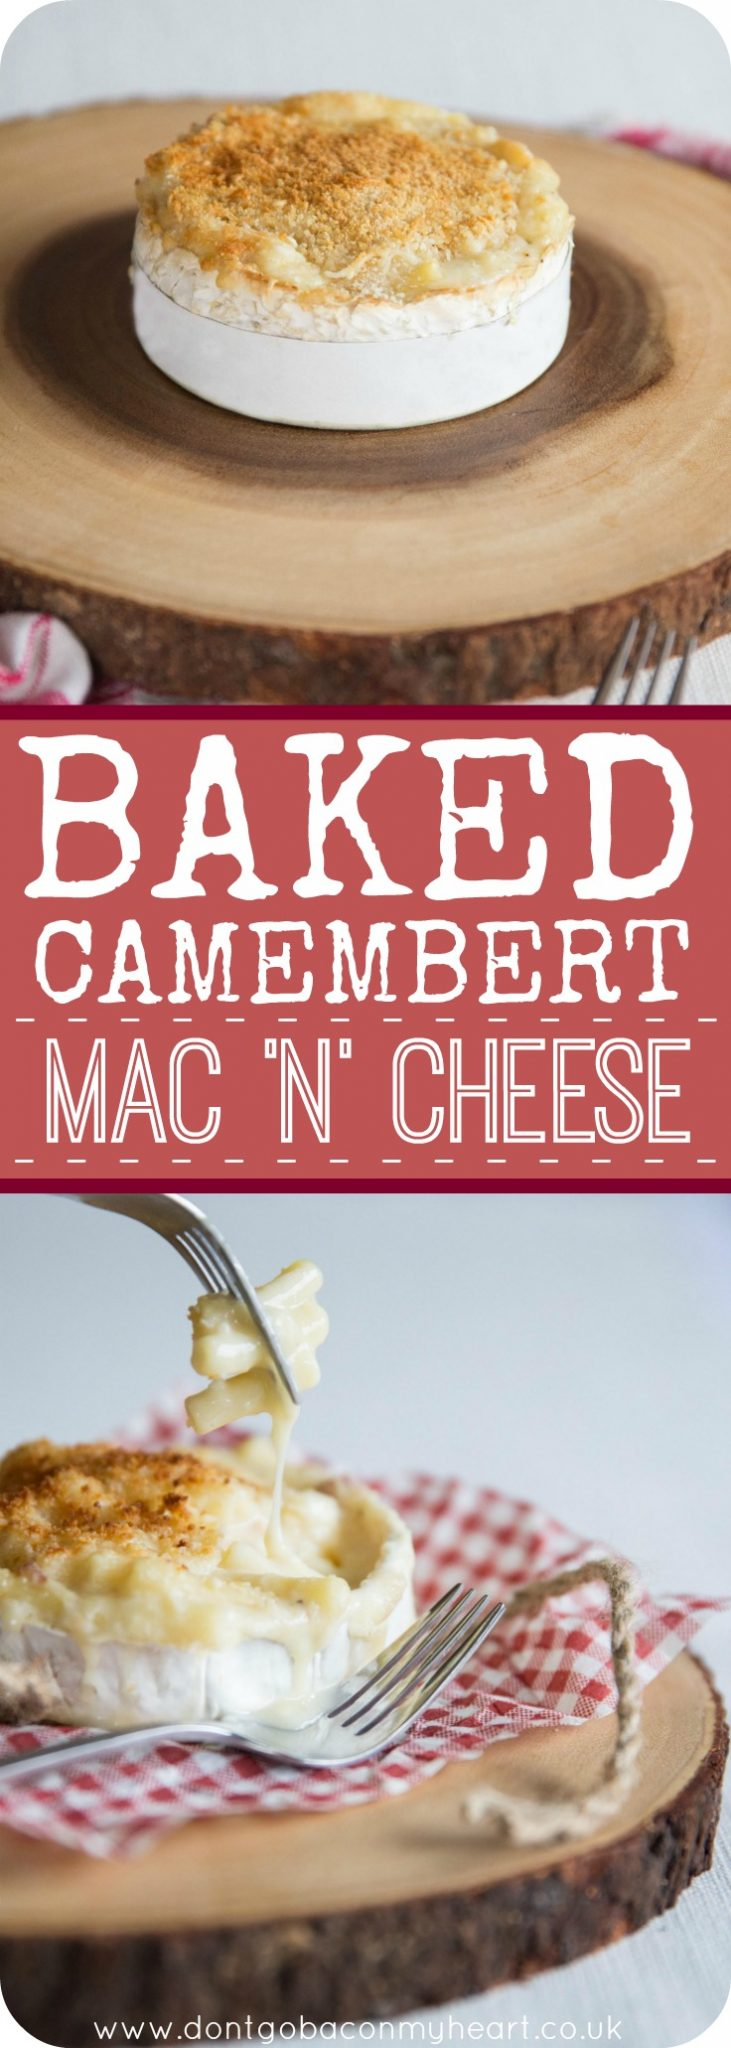 We've all seen the famous baked camembert, but are you ready for Baked Camembert Mac and Cheese? Meet your new favourite way to use a block of camembert in the most delicious way possible! #camembert #cheese #macandcheese | www.dontgobaconmyheart.co.uk